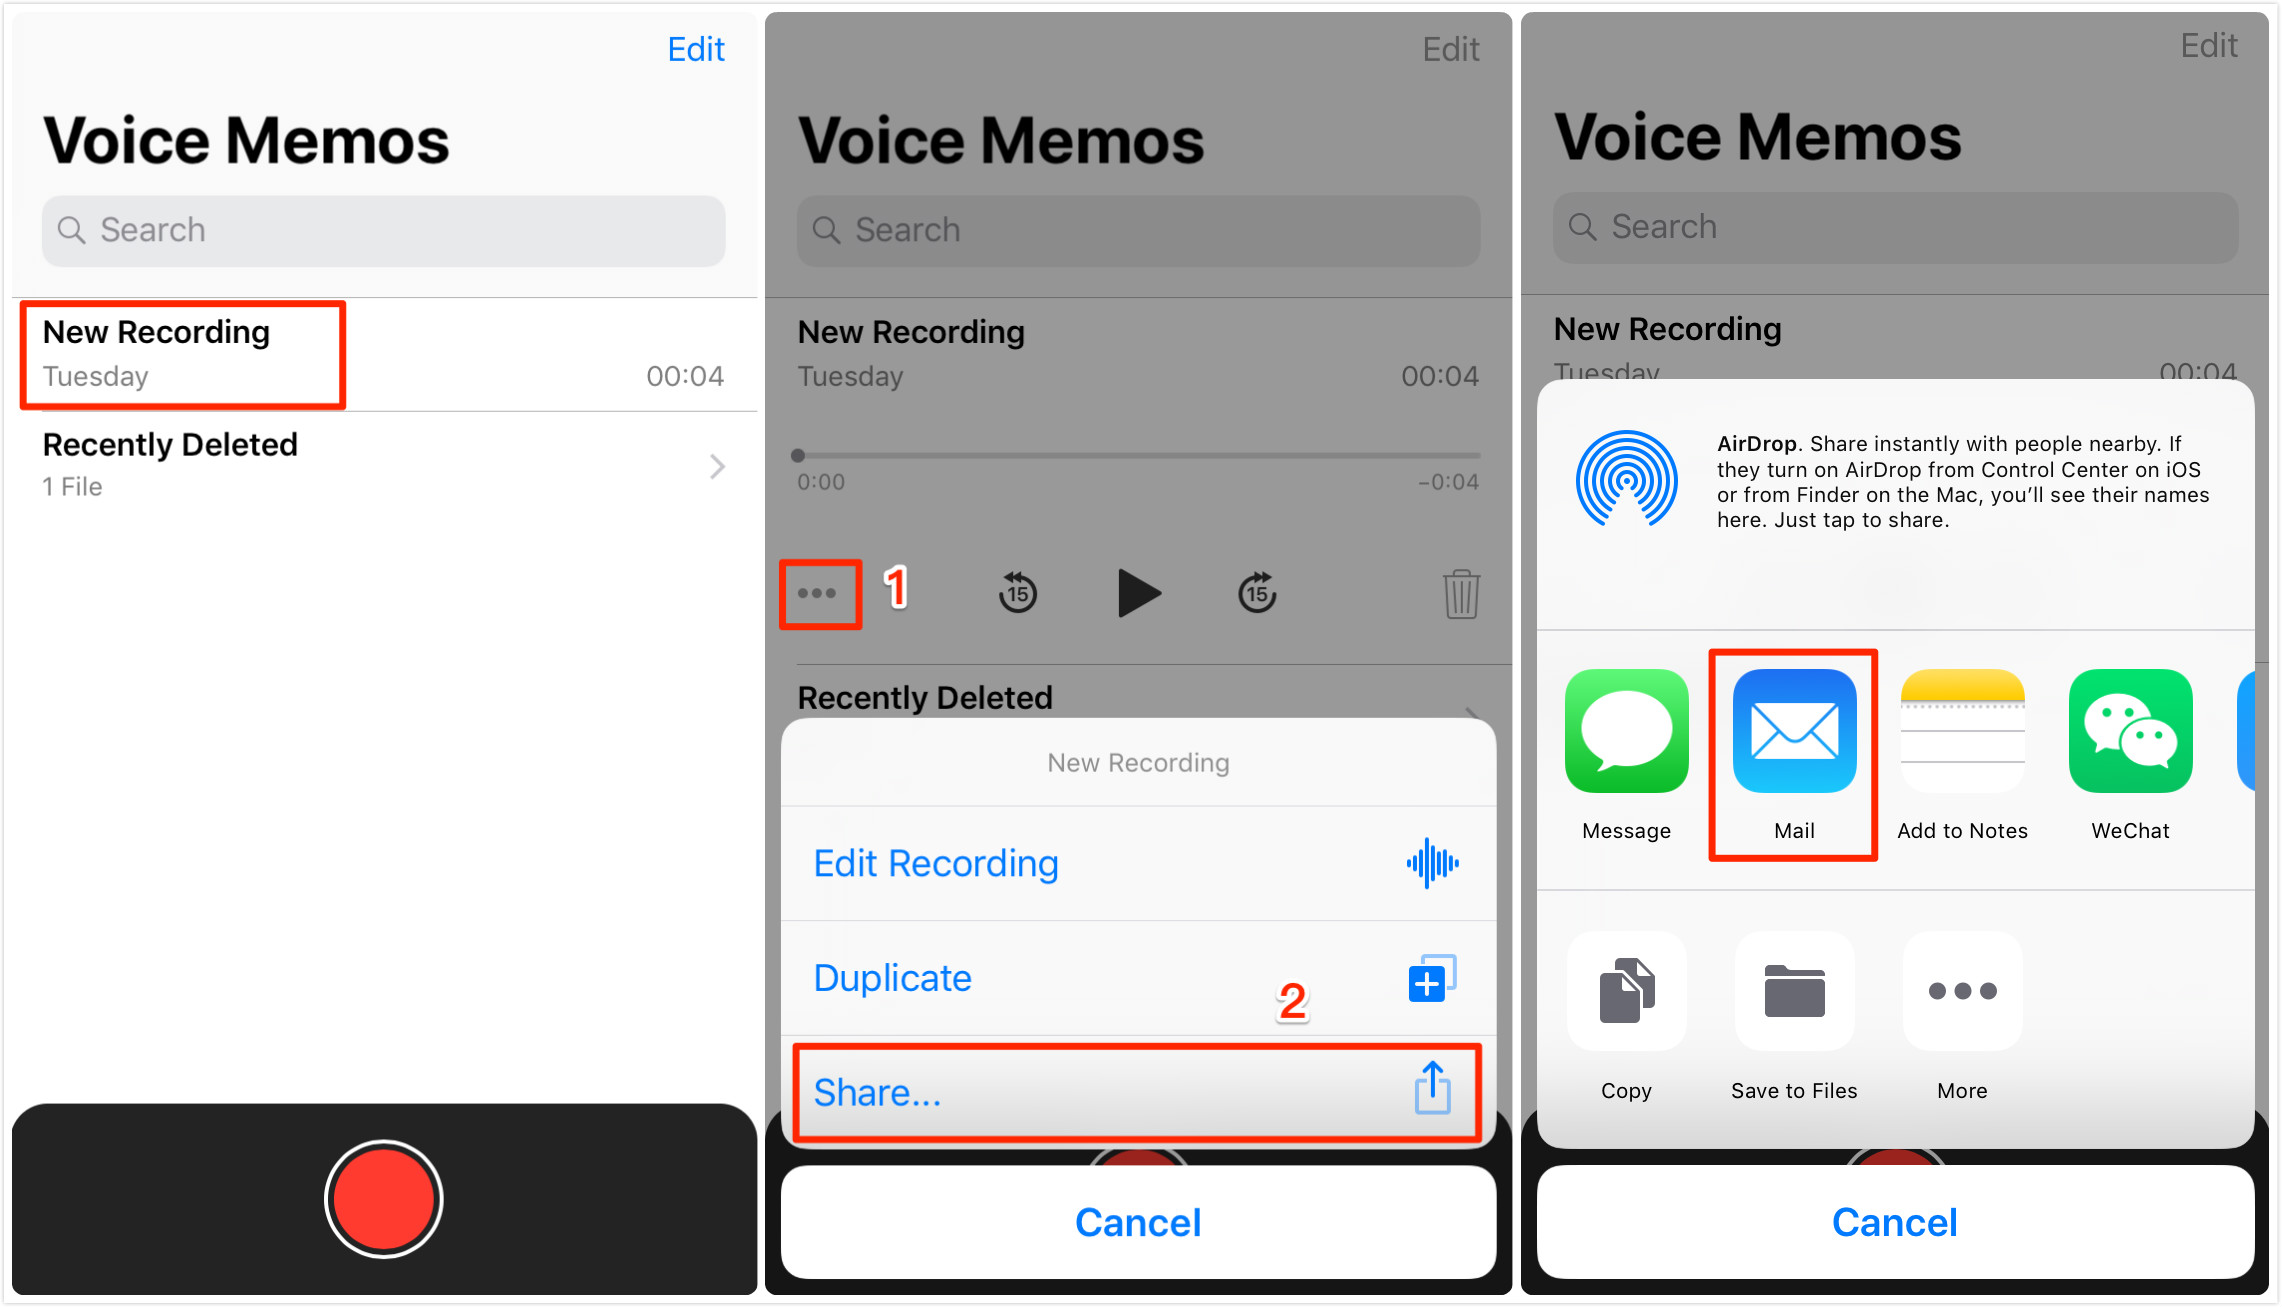 How to Transfer Voice Memos from iPhone to iPhone via Email